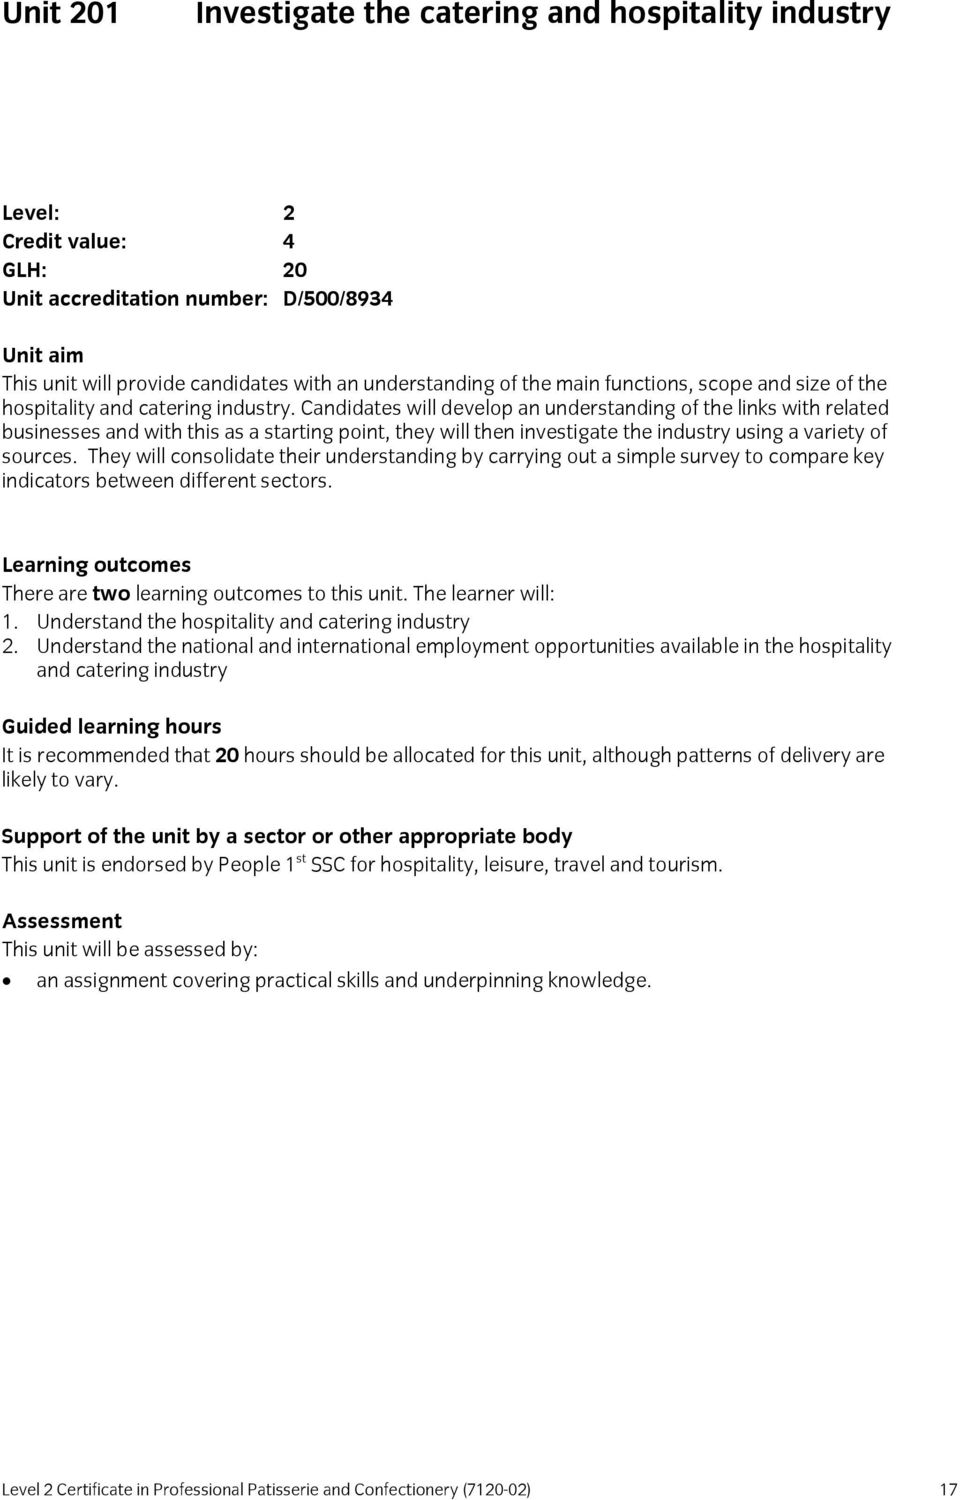 structure scope and size of the hospitality and catering industry